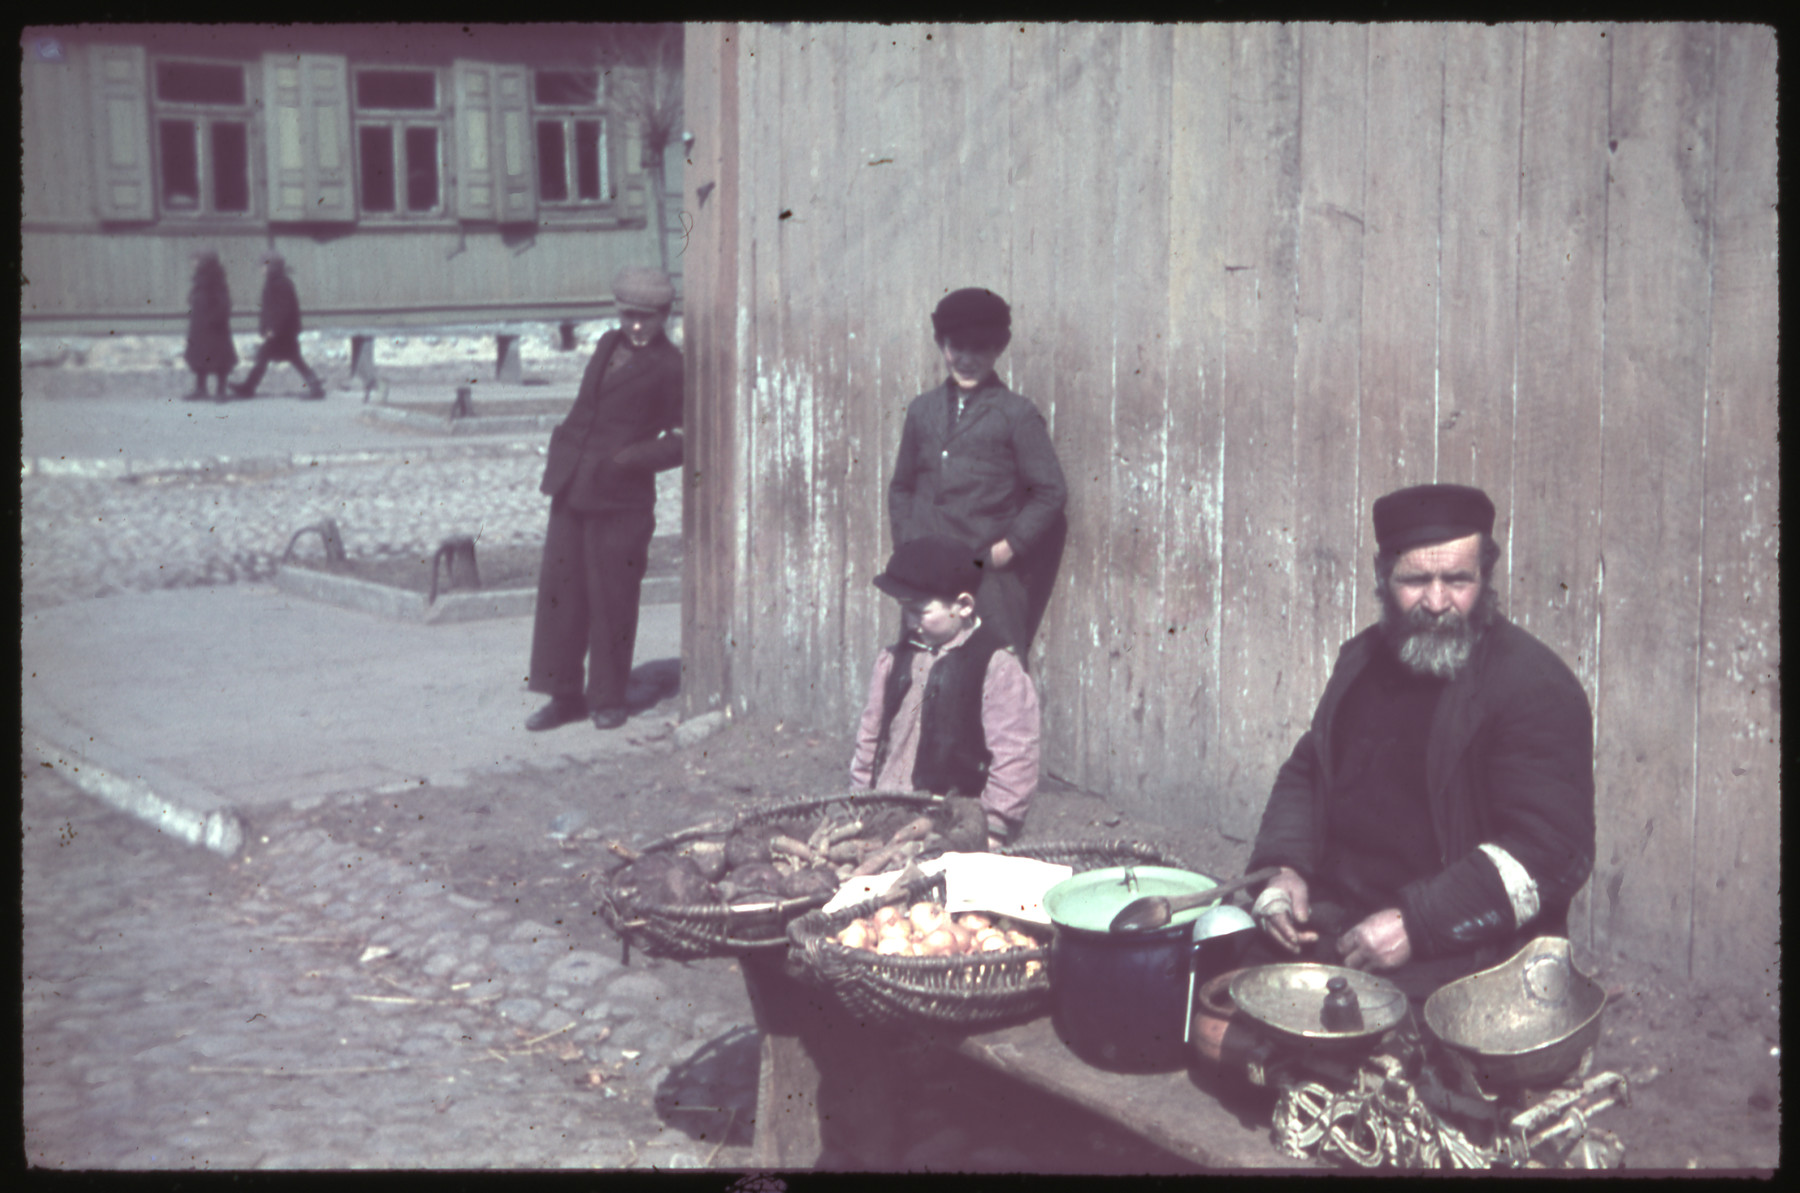 A Jewish man with a beard and armband sells food items on a street corner [perhaps in Kozienice].